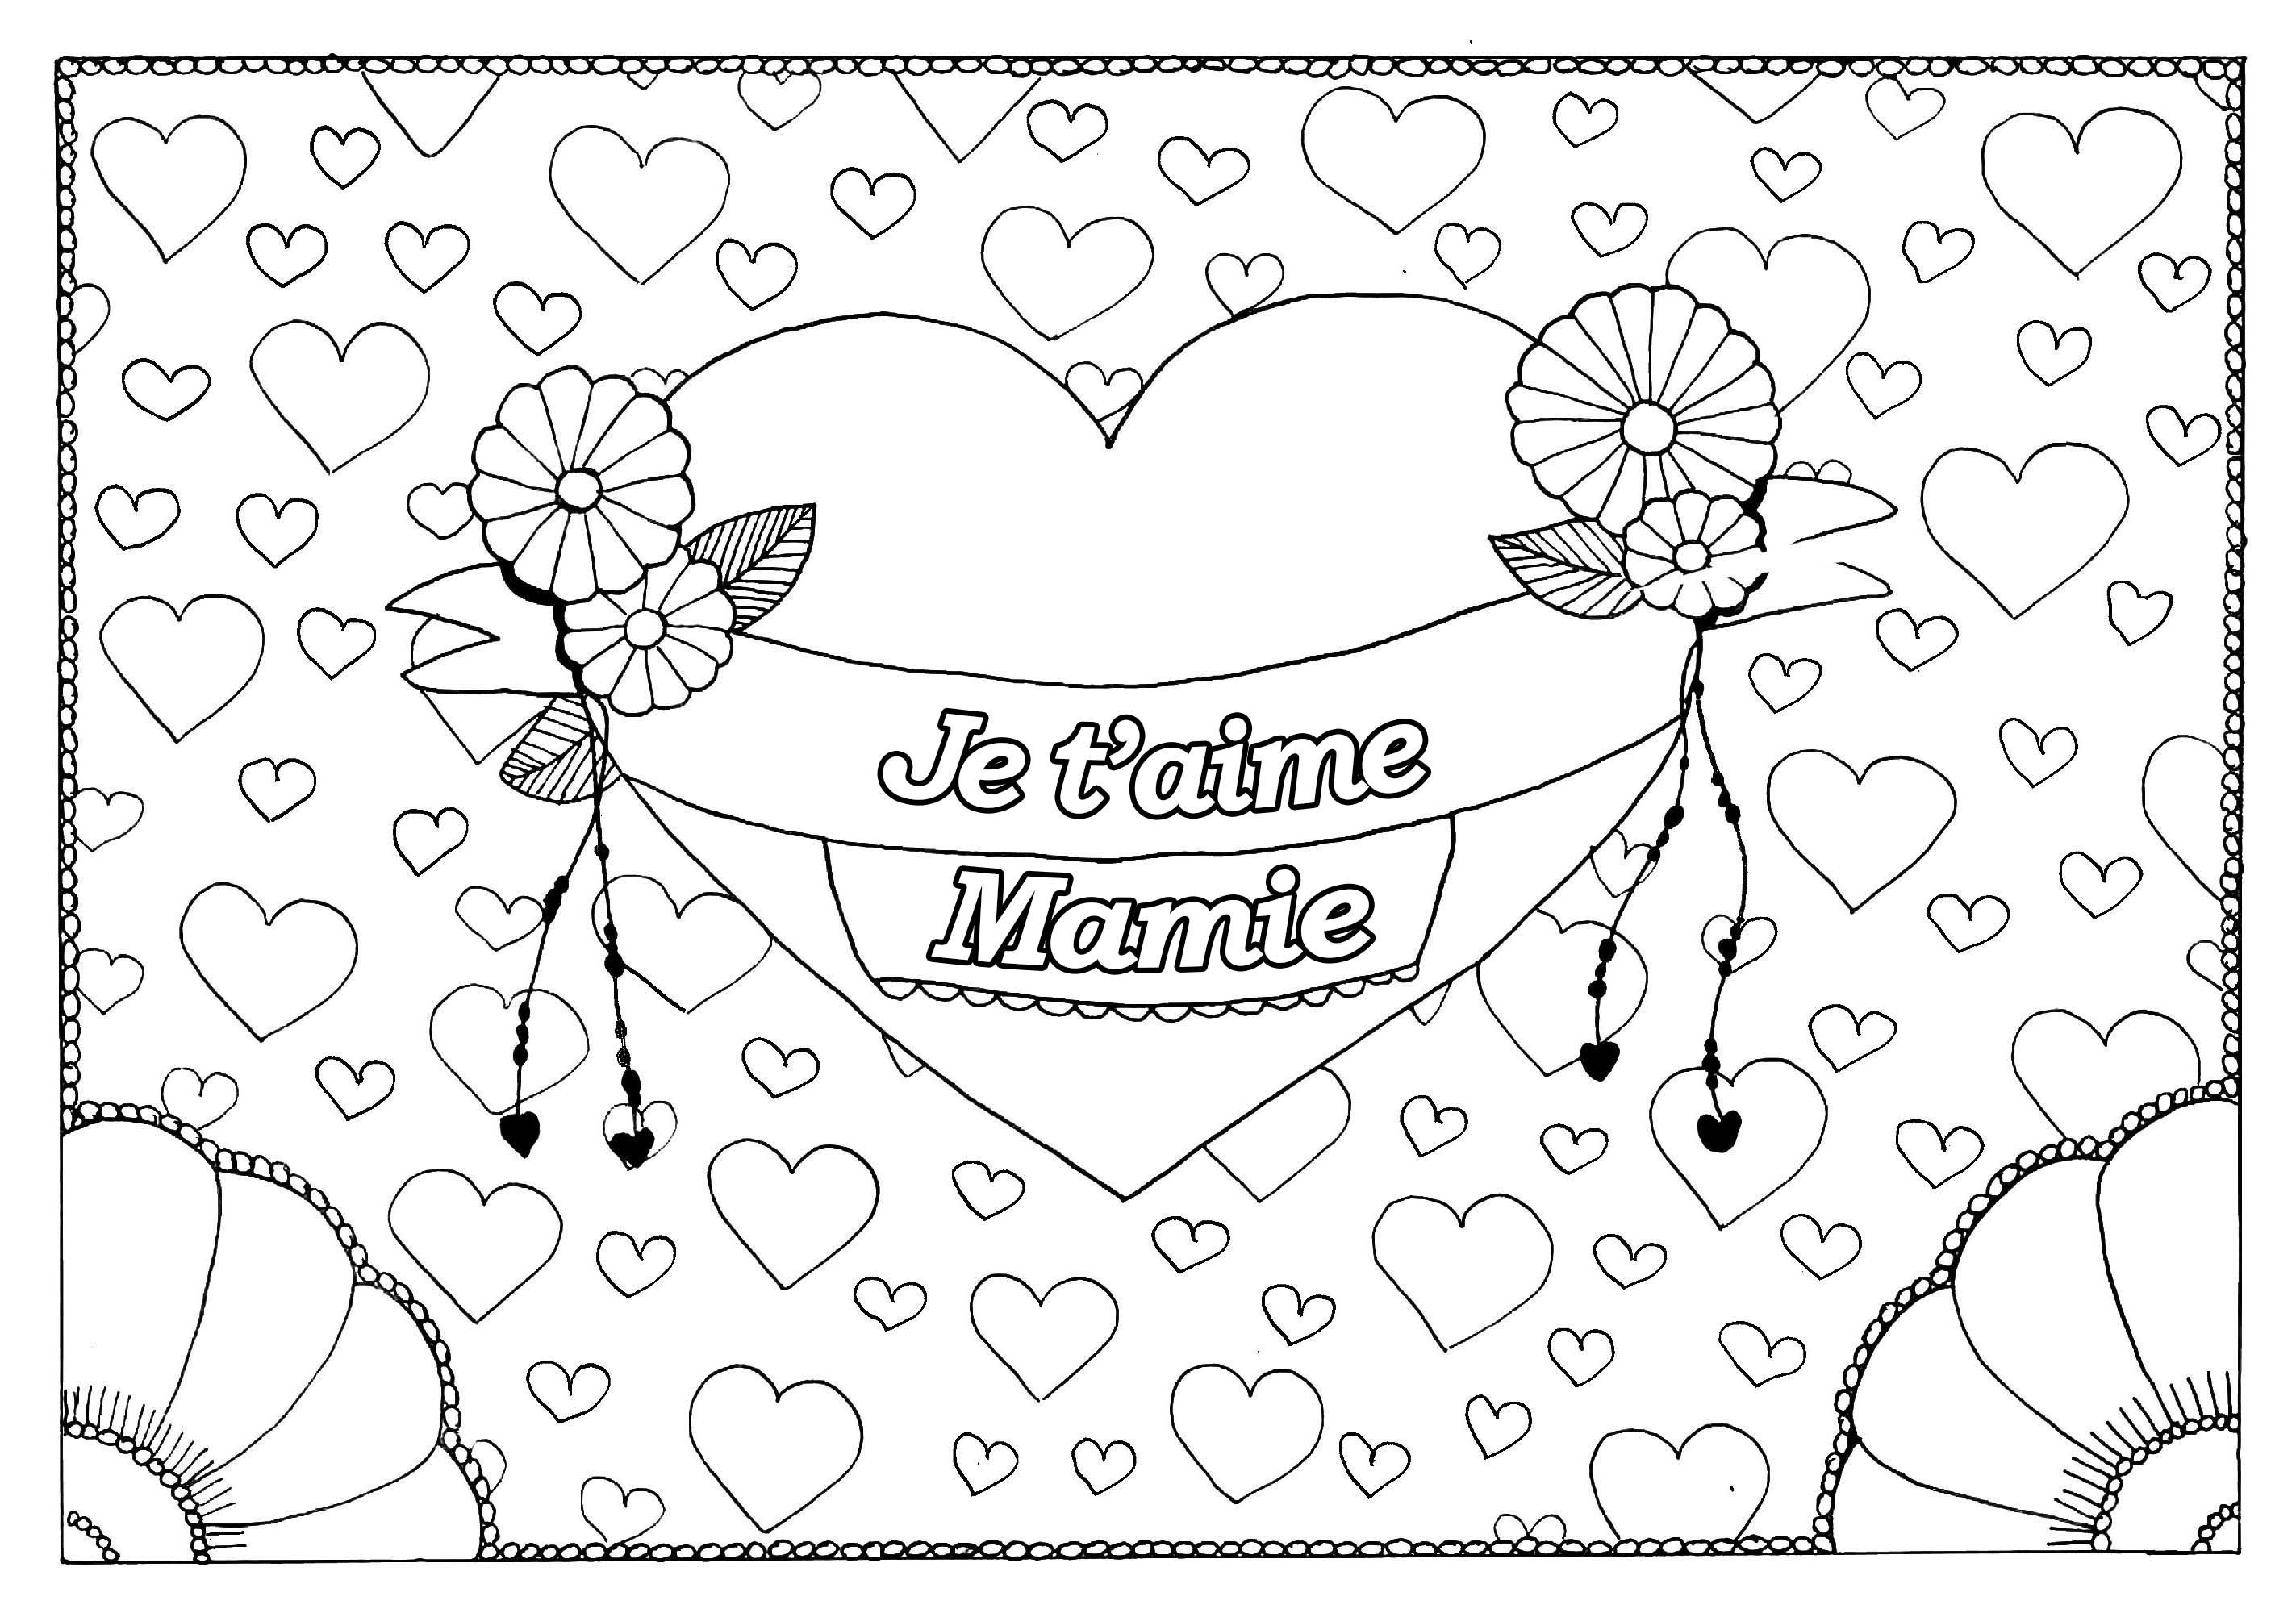 Fete Grand - Coloriages Fêtes Des Grands Parents - Just à Coloriage Bonne Fete Mamie